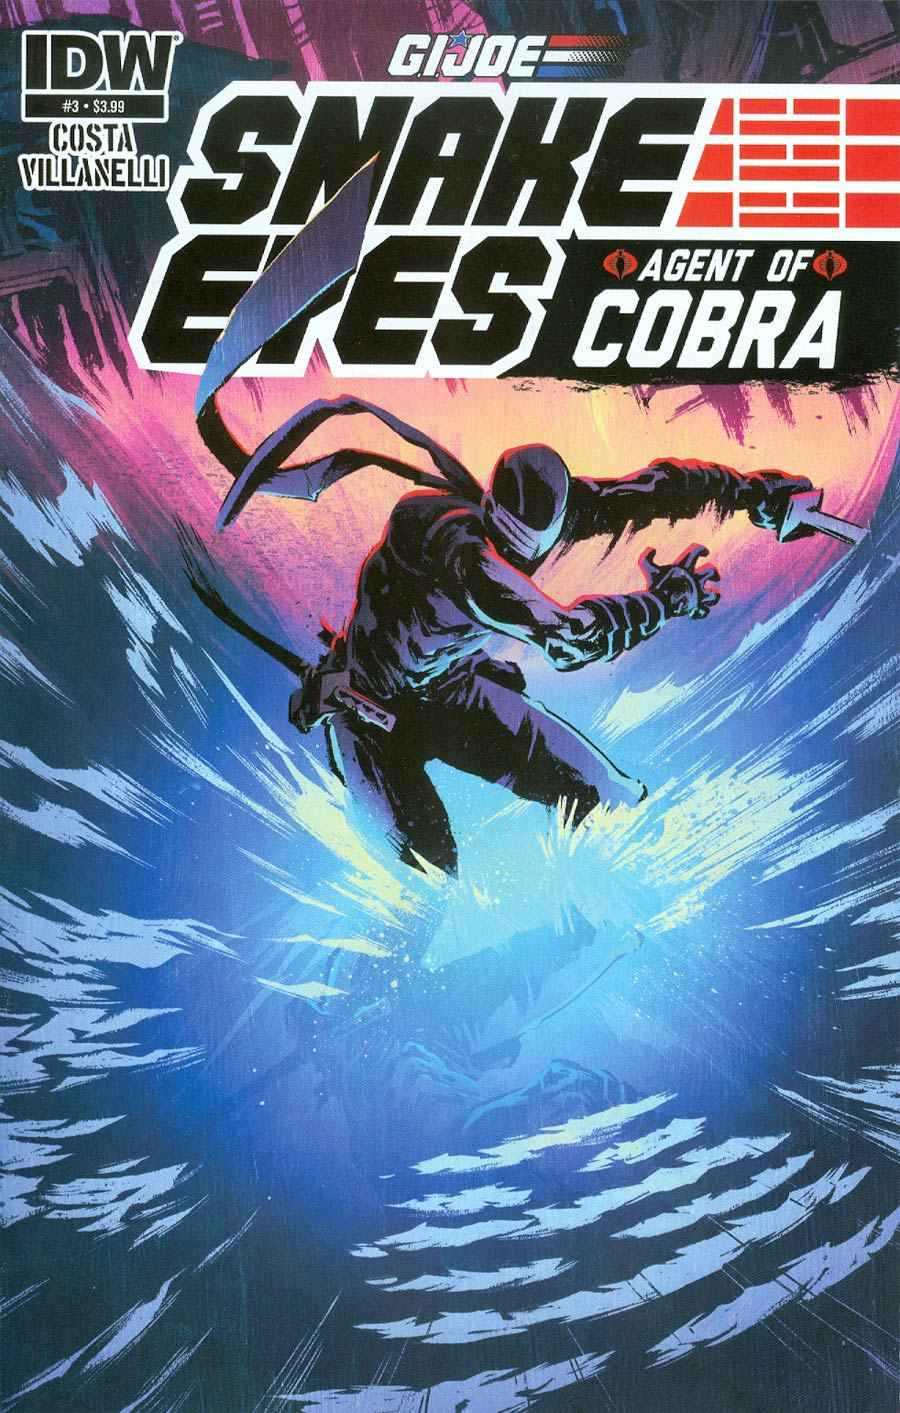 GI Joe Snake Eyes Agent of Cobra #3 Near Mint (9.4) [IDW Comic]